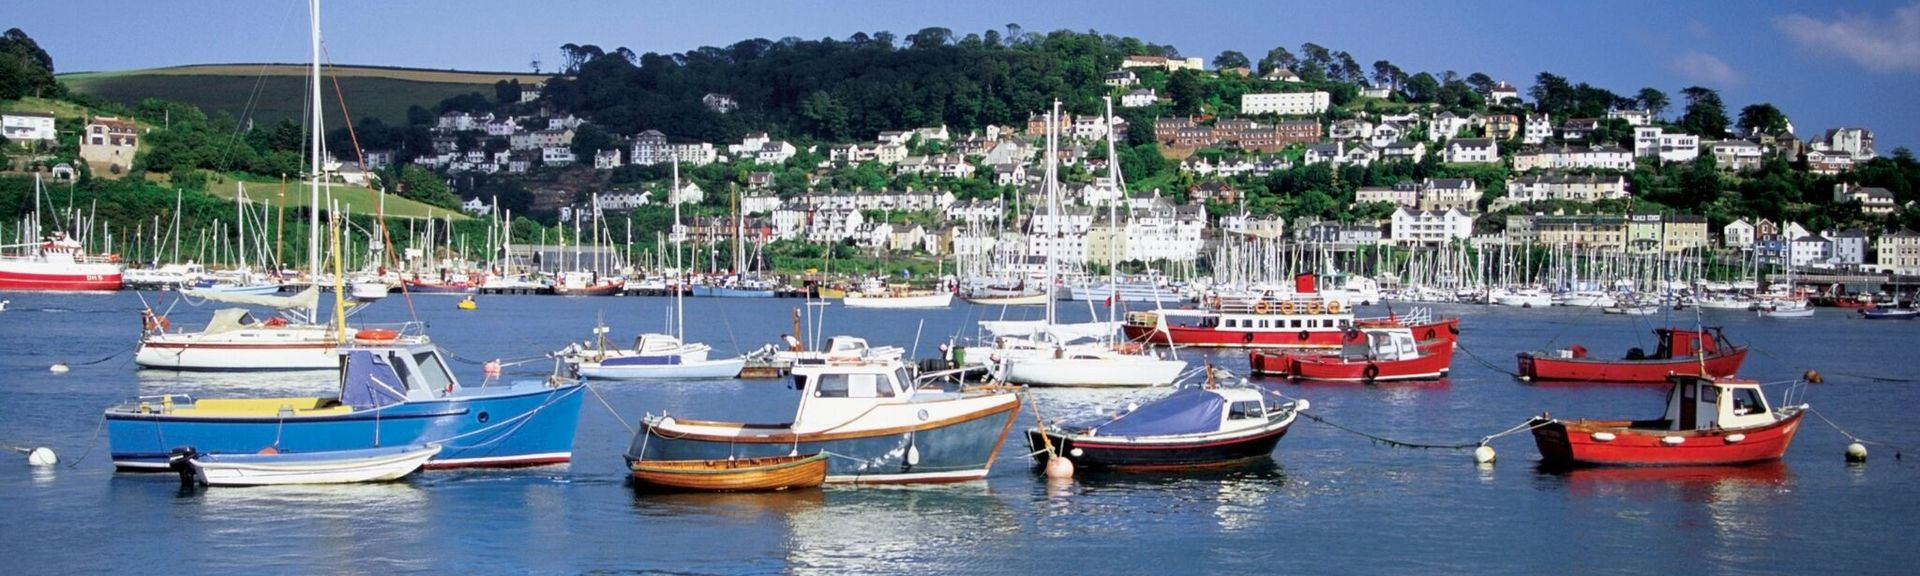 Dartmouth, England, United Kingdom